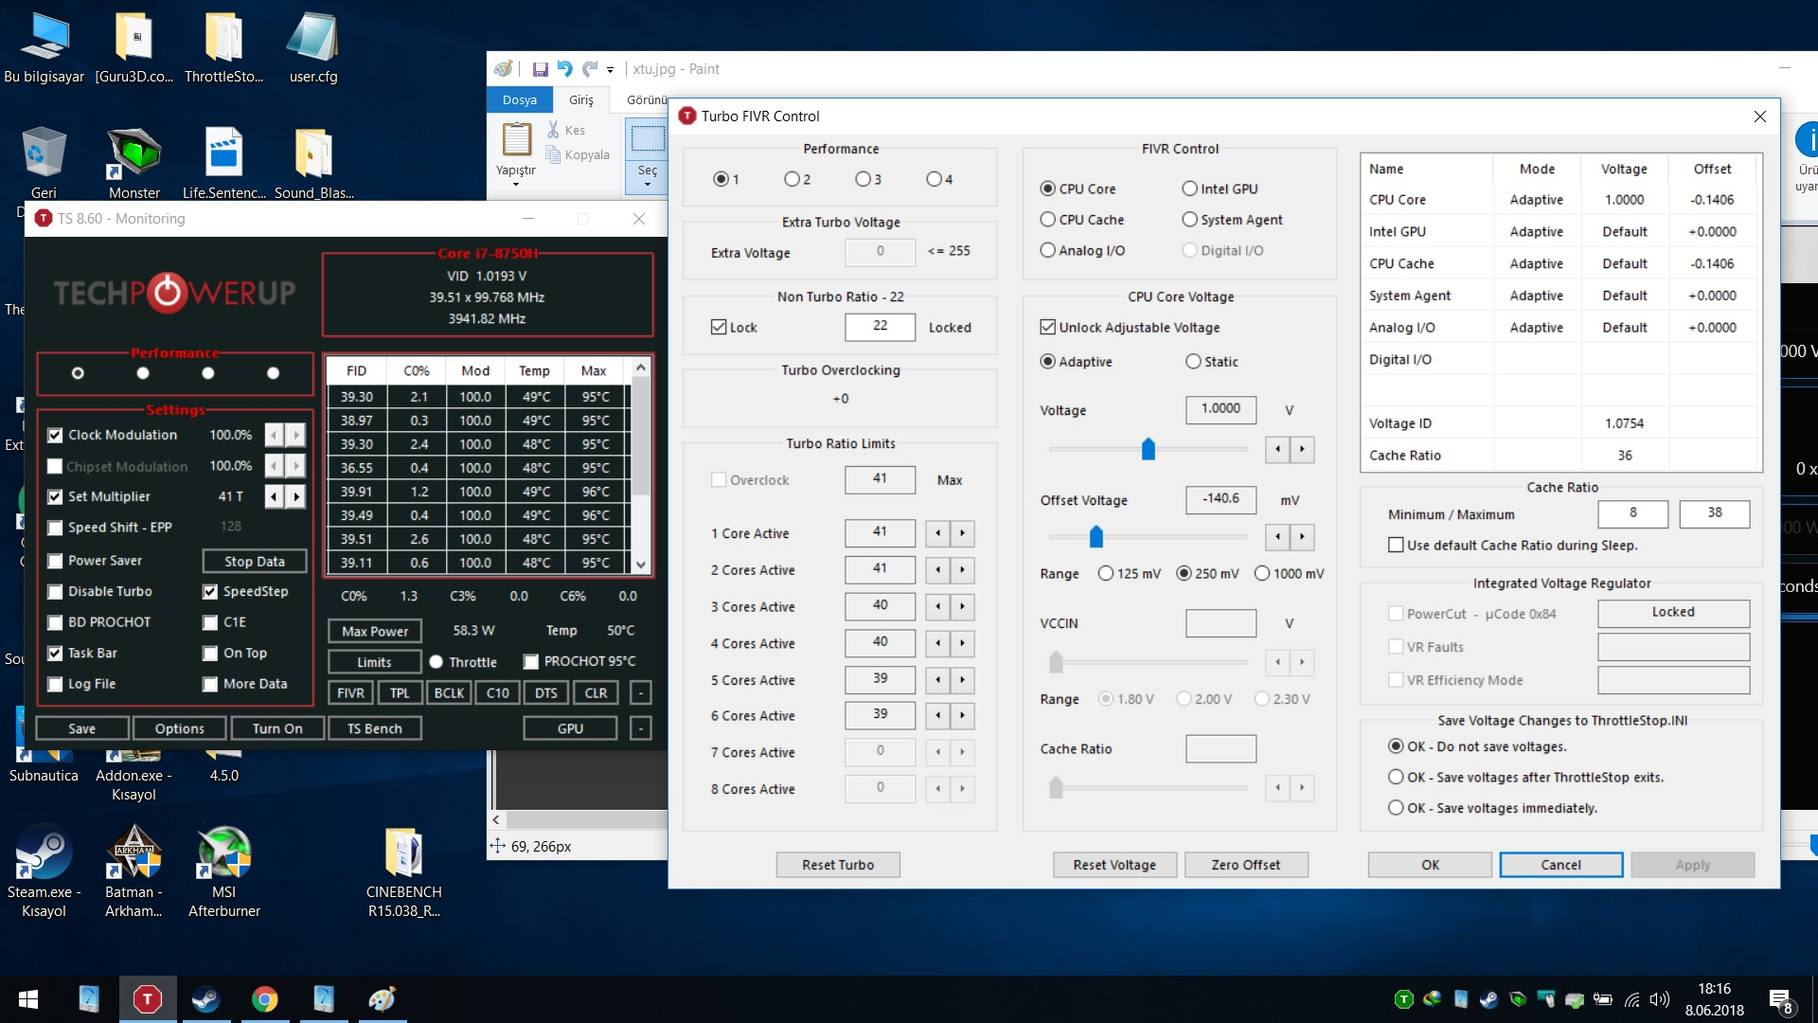 i7 8750h - Power Limit Throttling - Low TDP Even though cooling is